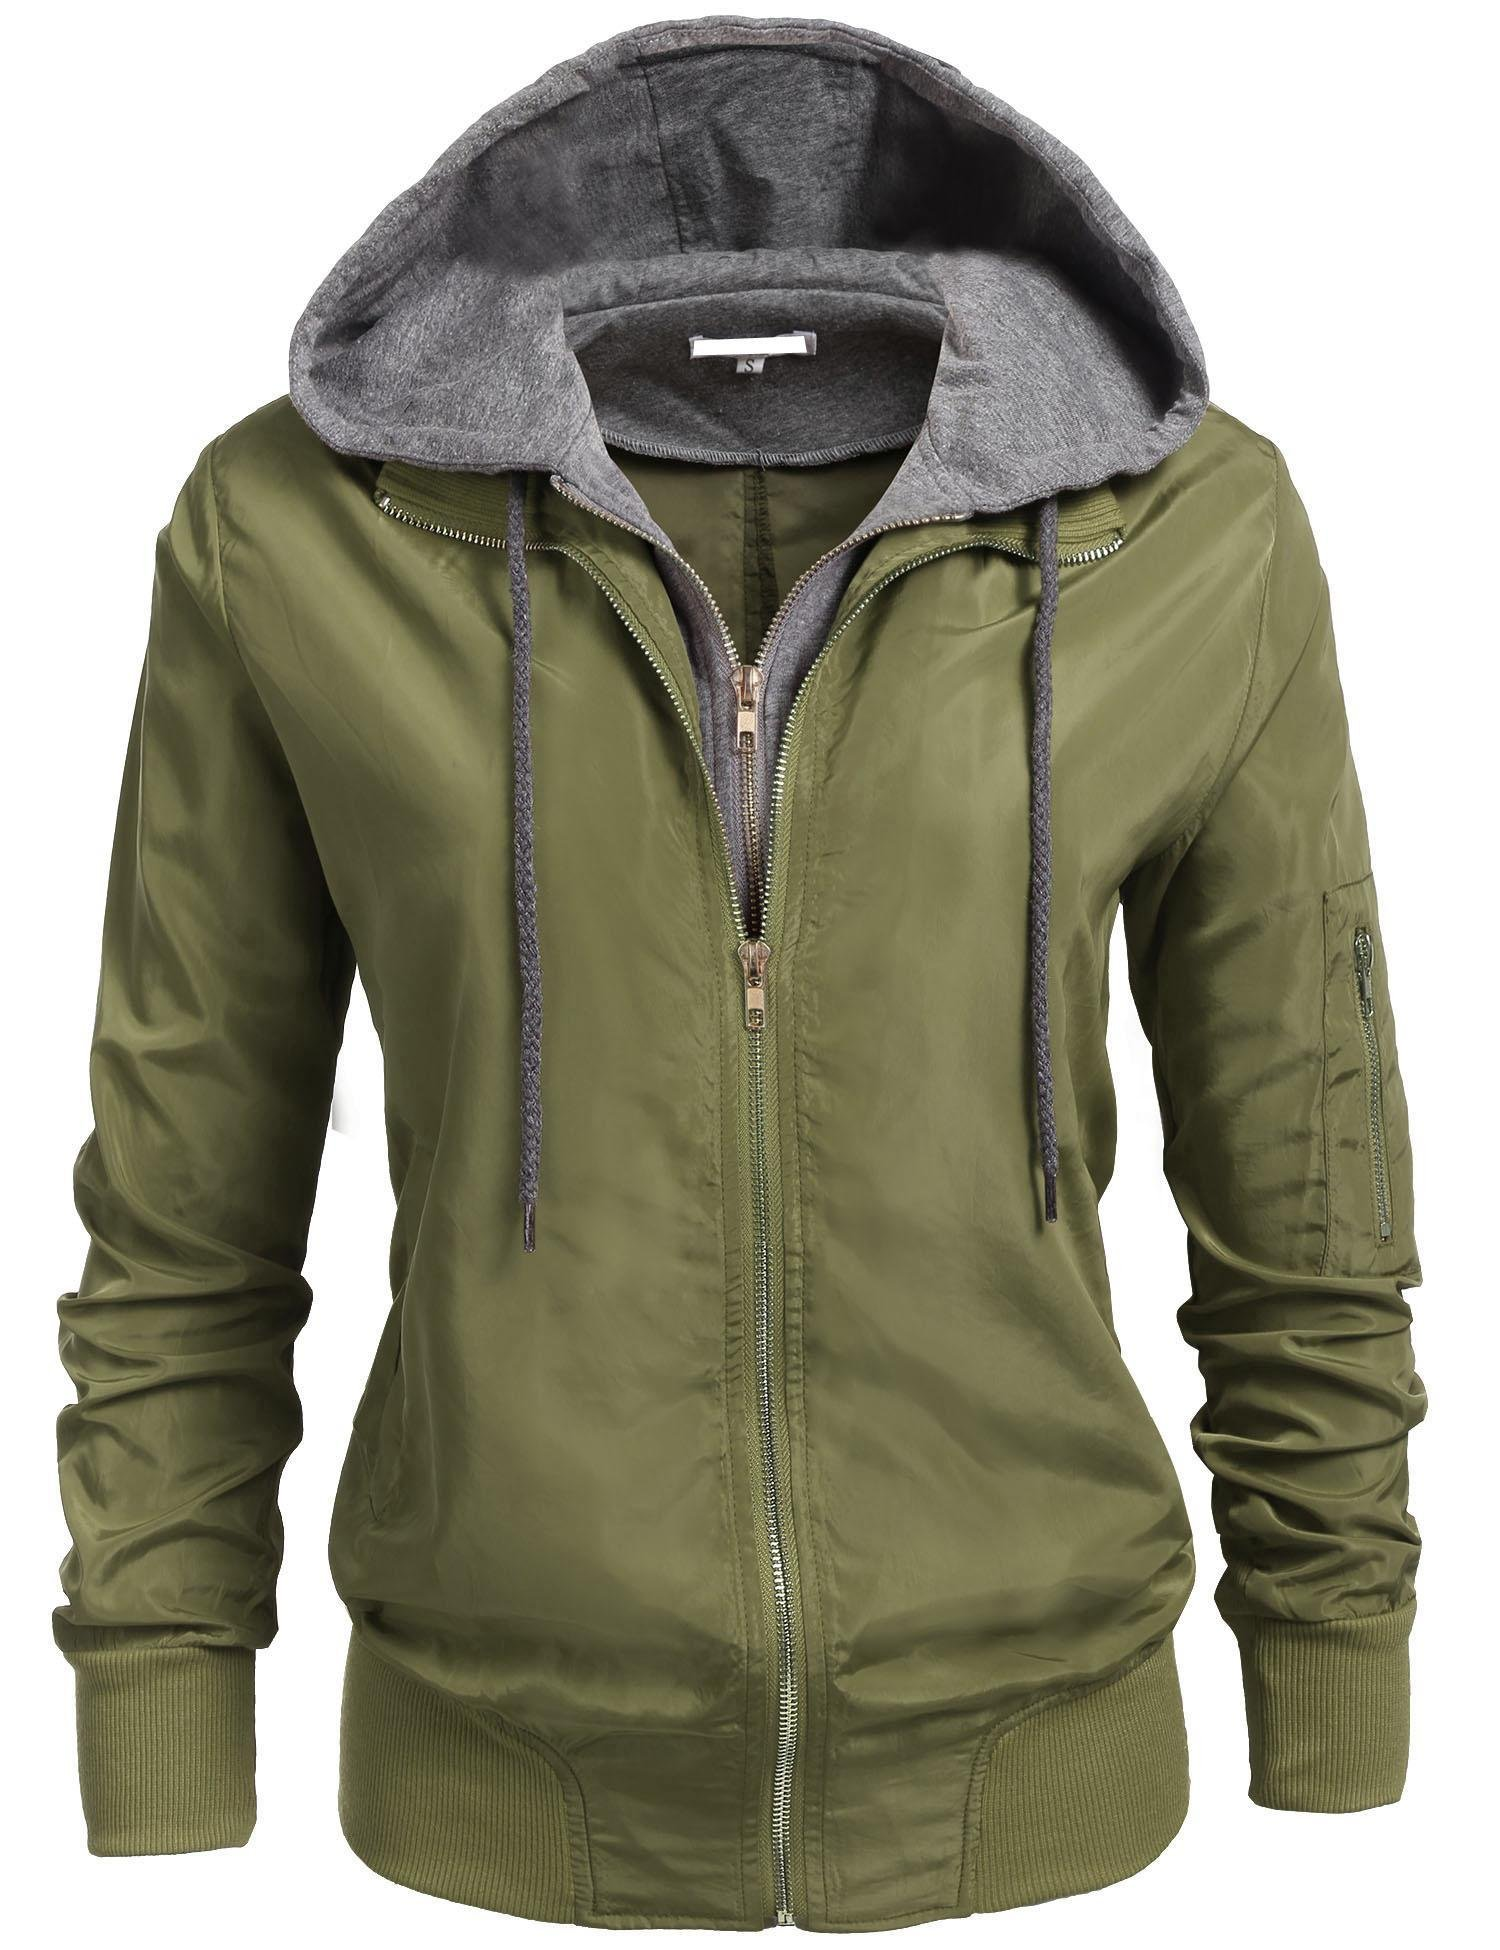 Zeagoo Women's Warm Relaxed Fit Padding Zipper Bomber Jackets Army Green M